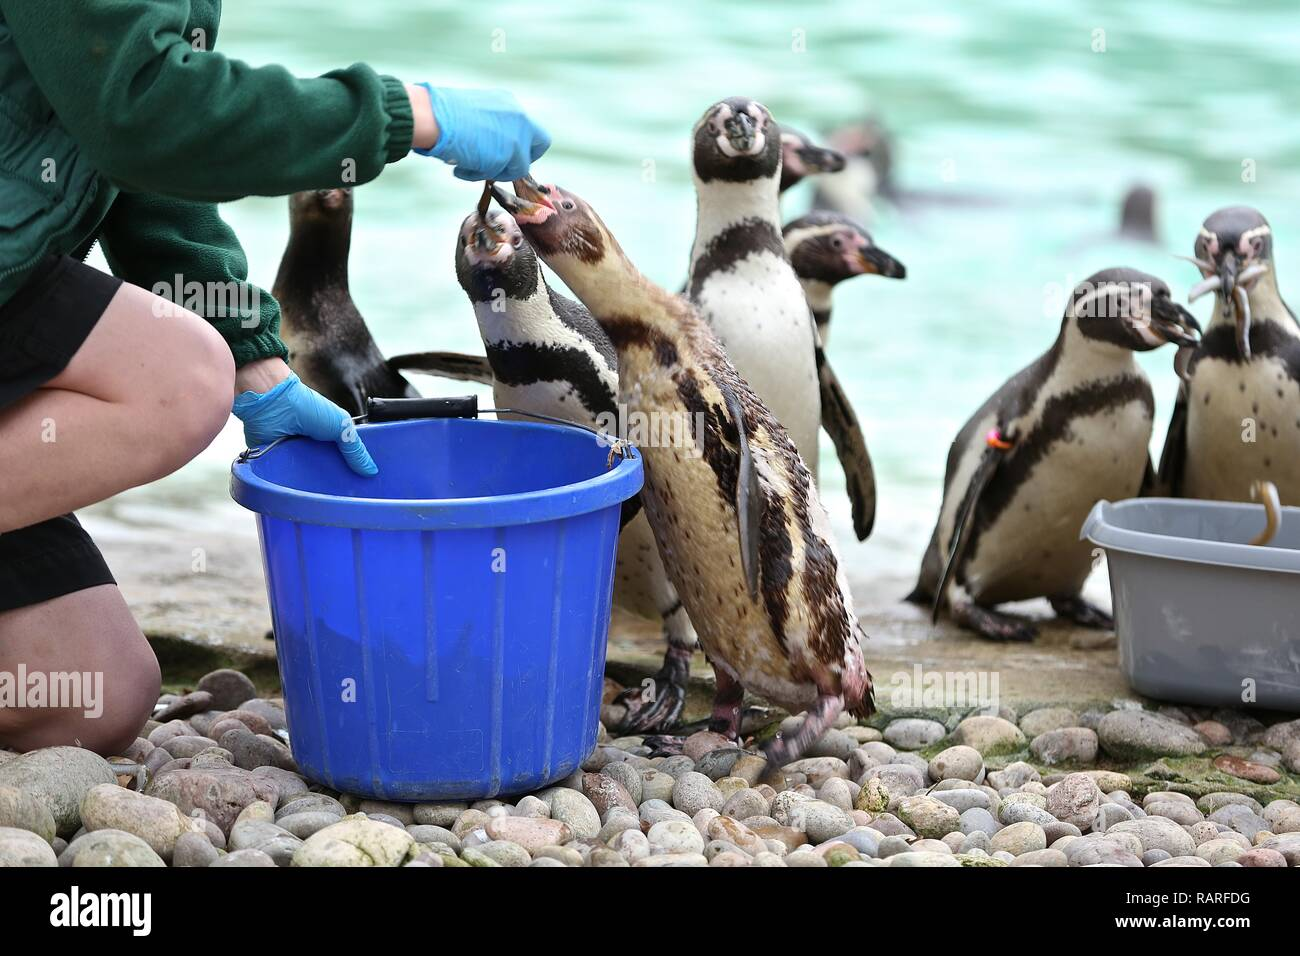 London Zoo animal yearly stock check 3 Jan 2019 ... - Stock Image